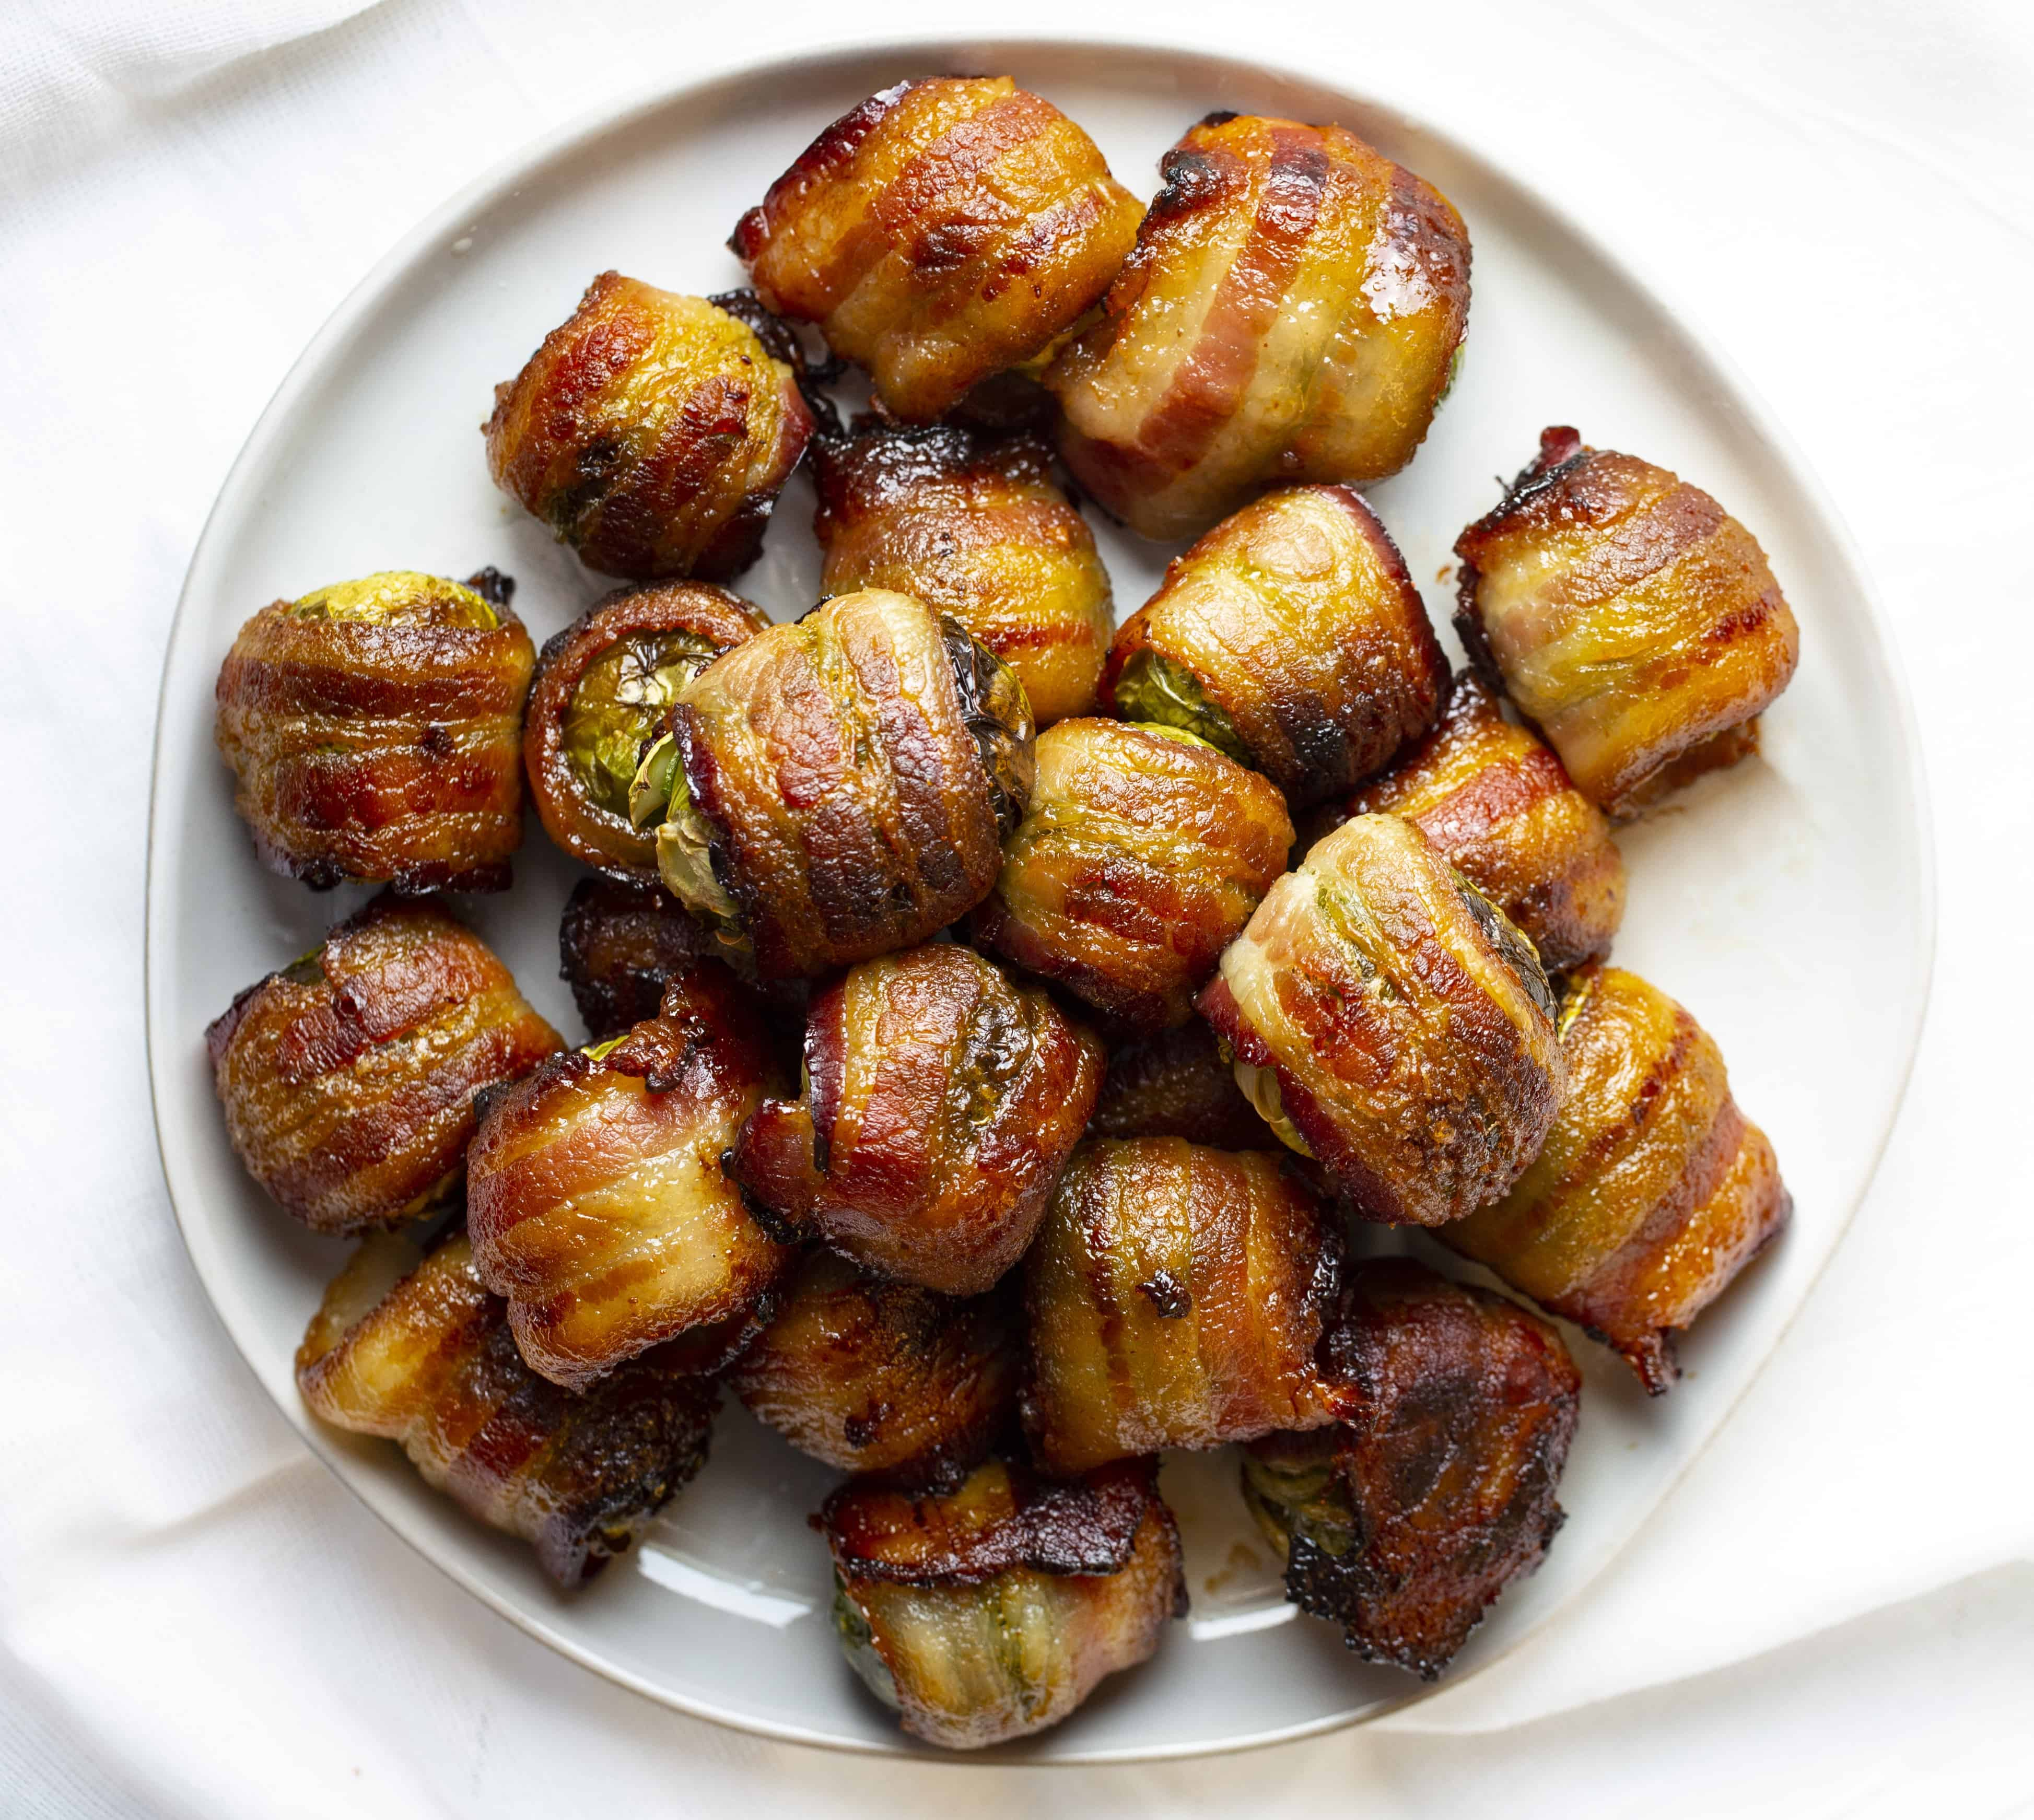 Bacon Wrapped Brussel Sprouts on a Plate